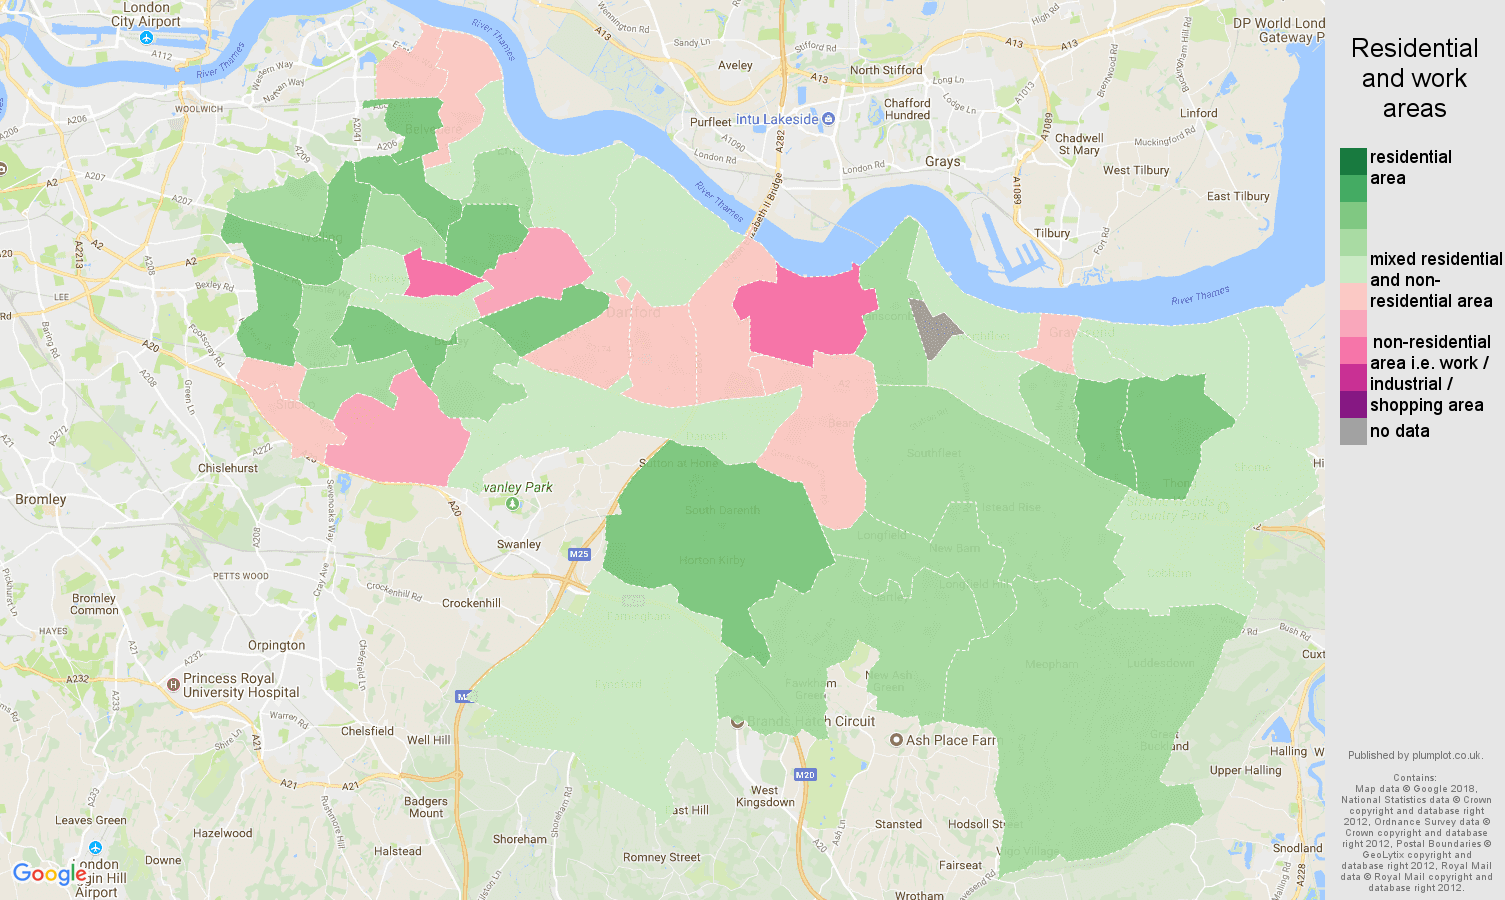 Dartford residential areas map